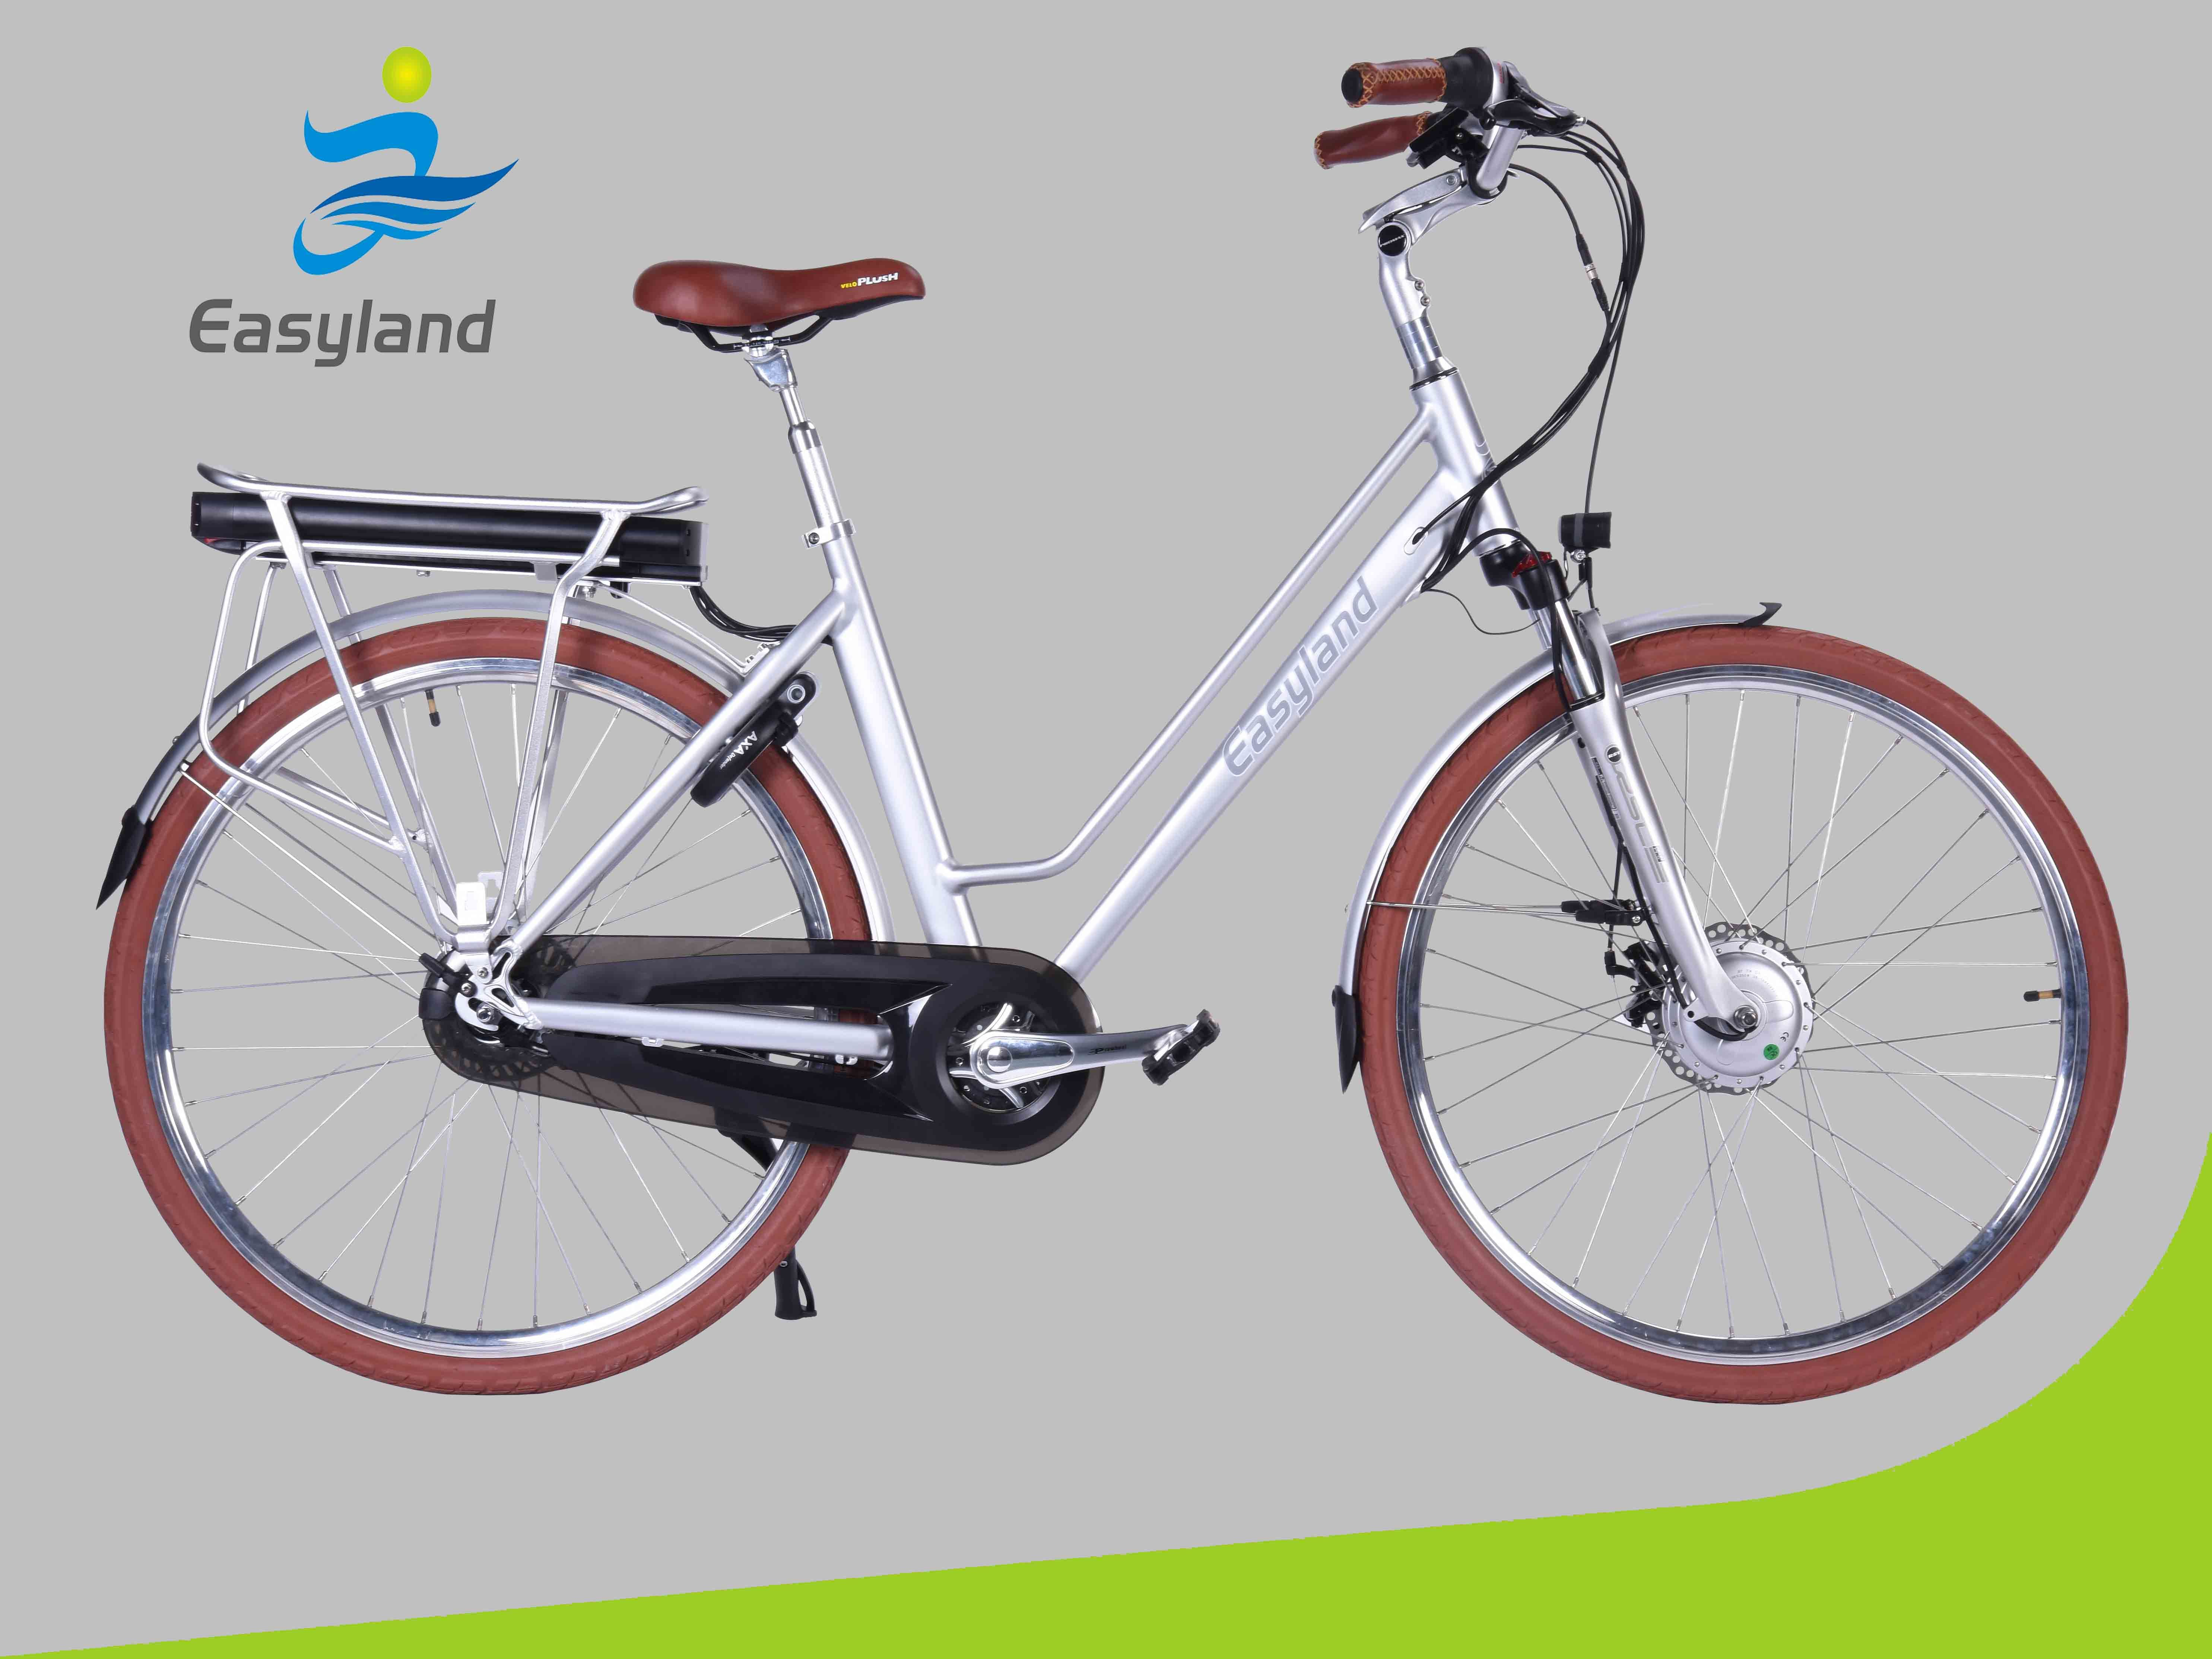 Newest 700c E-Bicycle